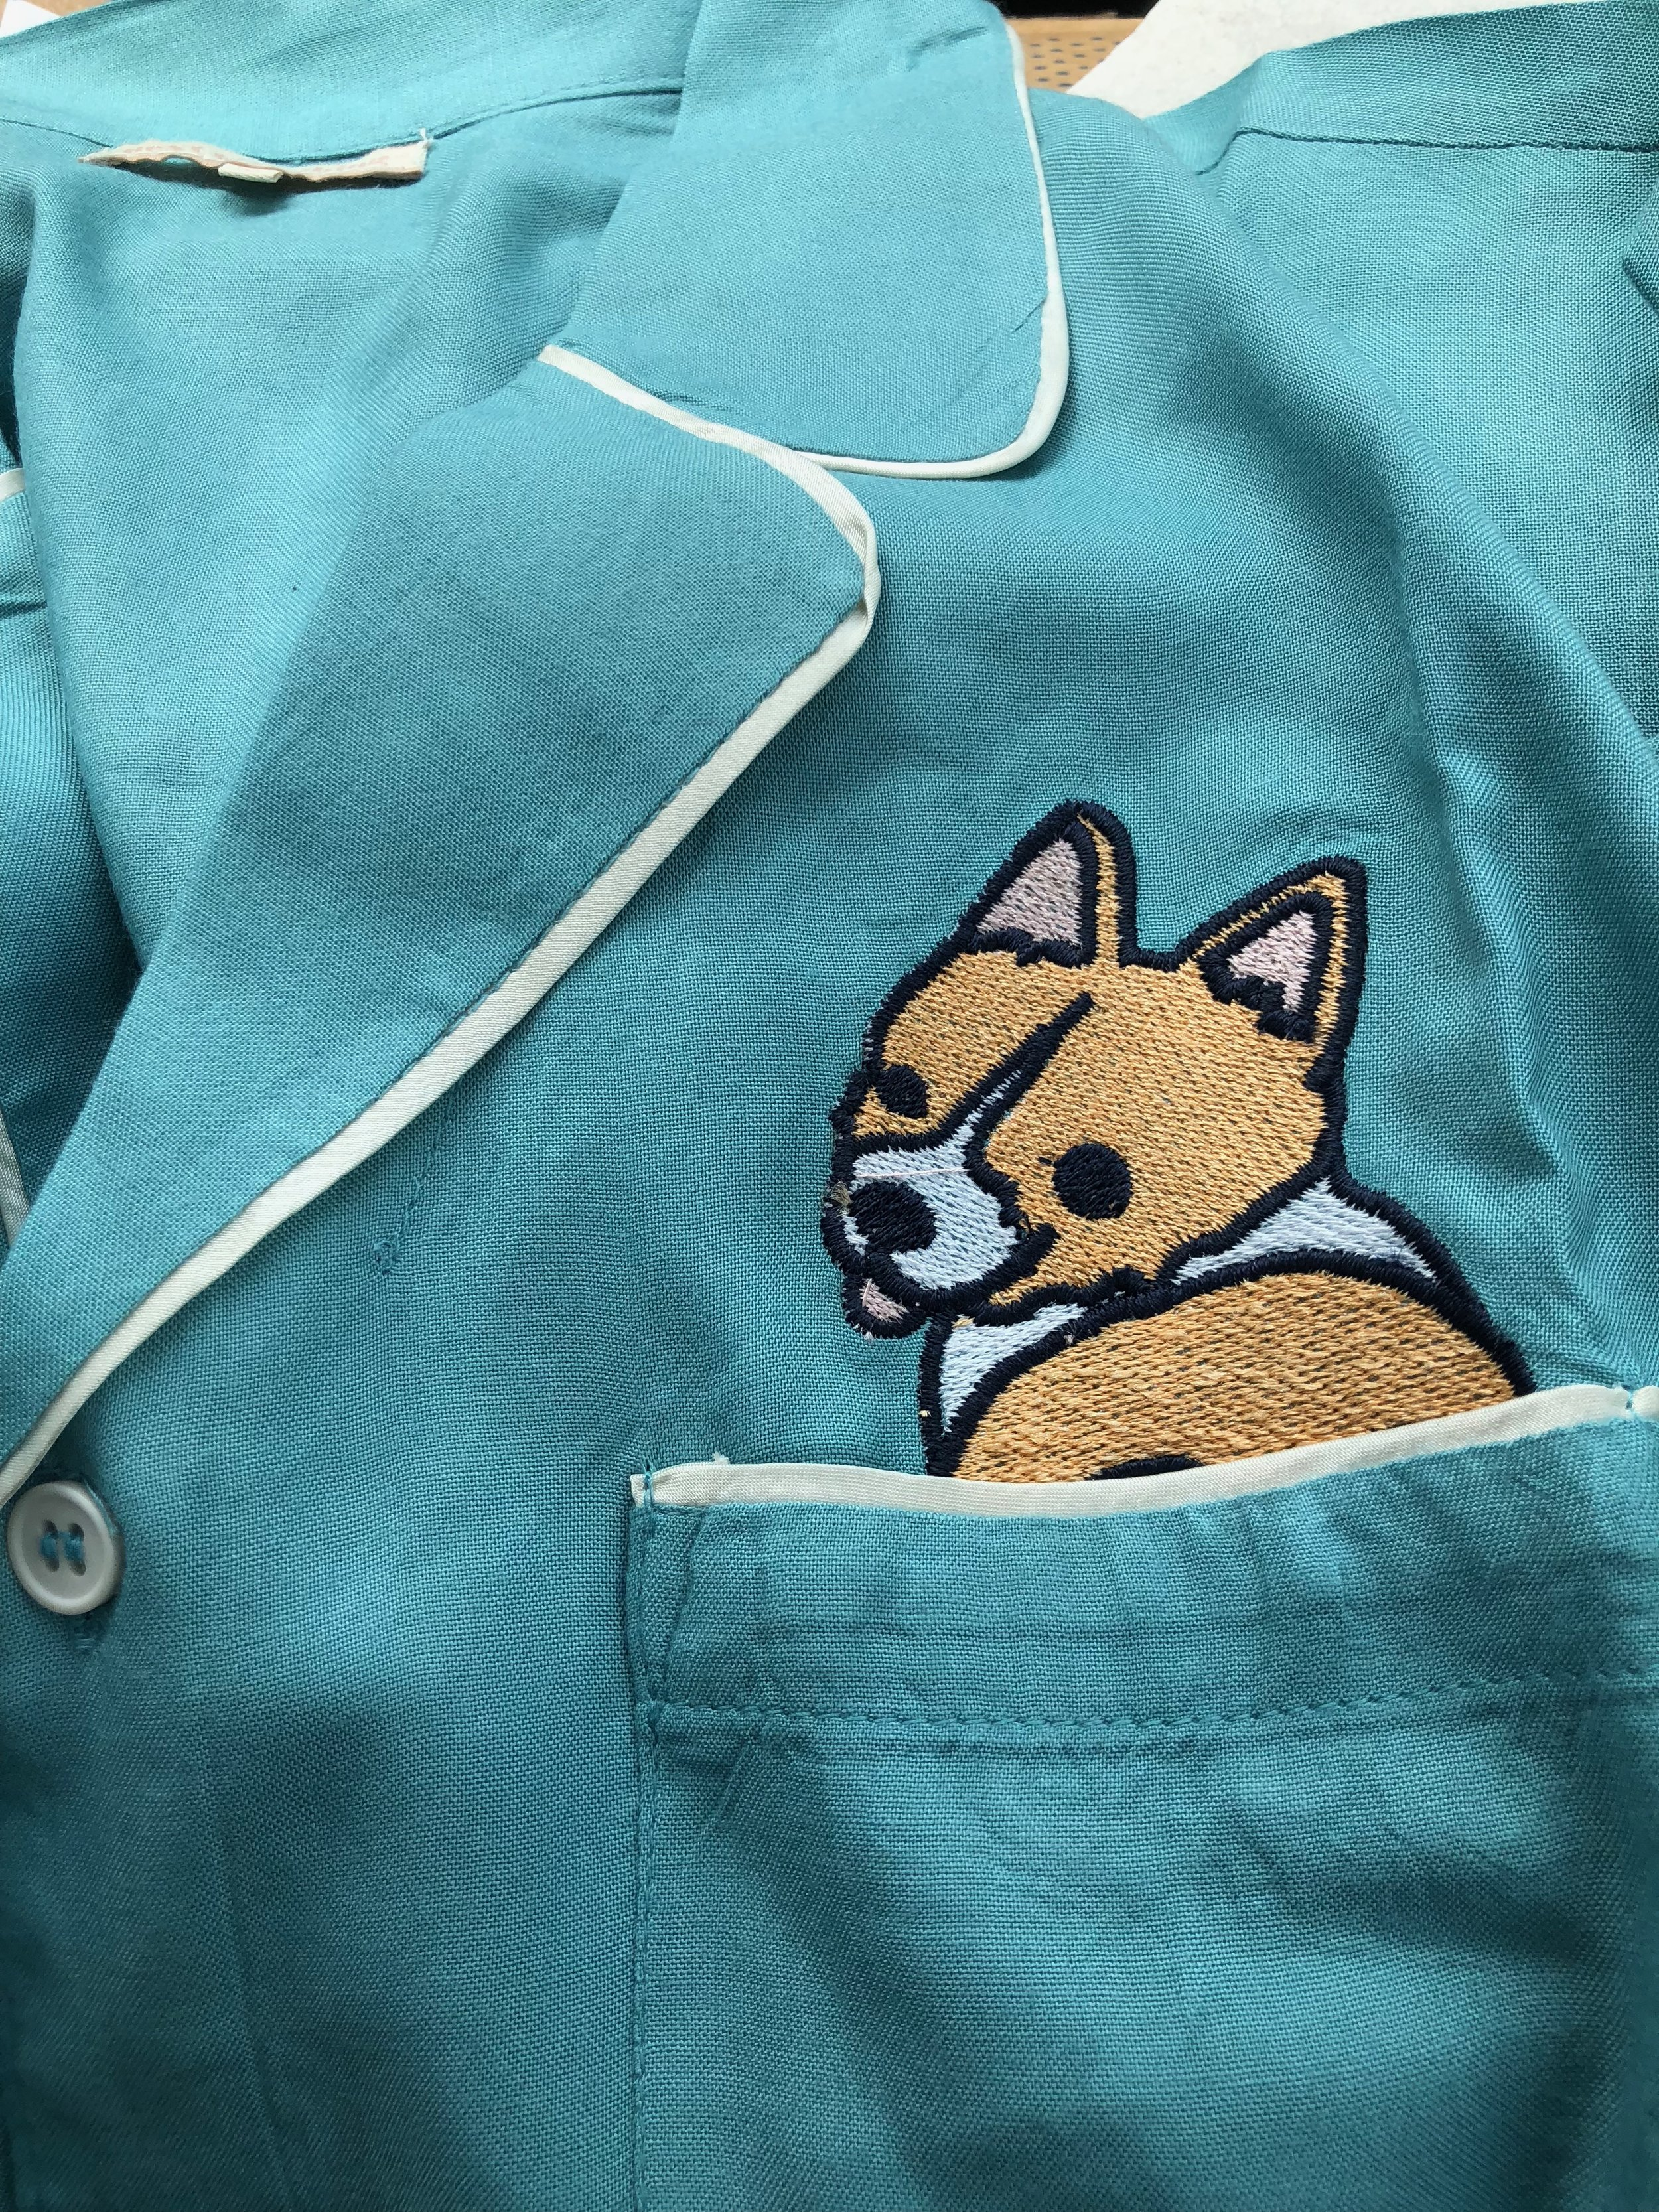 The corgi pajamas!